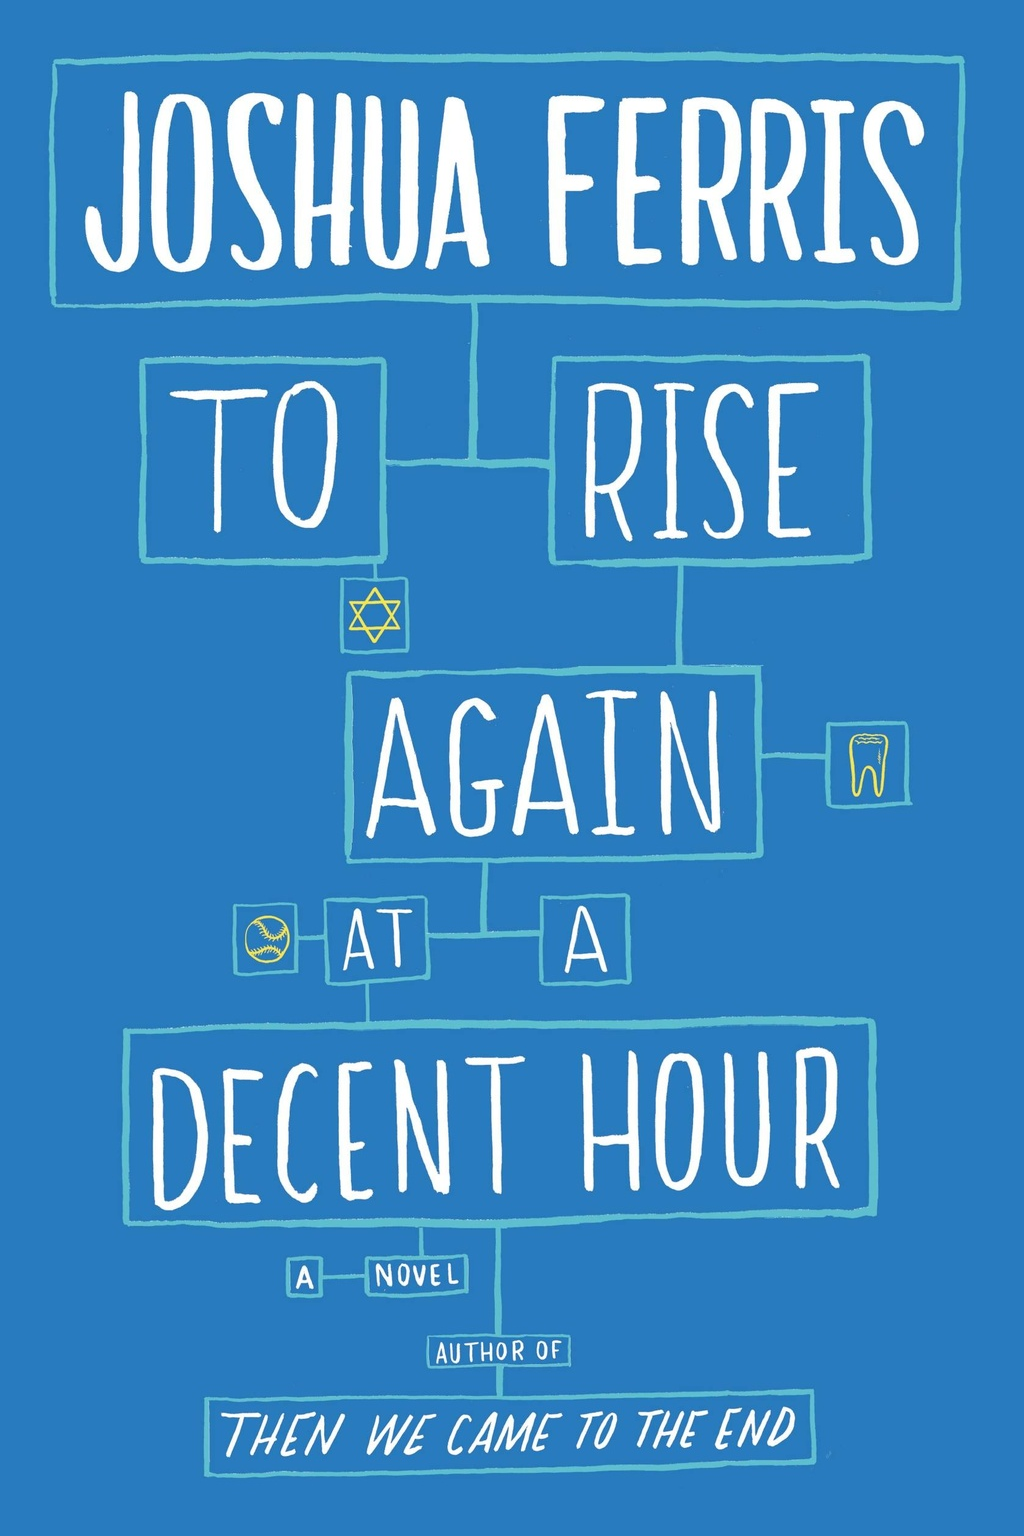 All of It - November 2015 Book Report - To Rise Again at a Decent Hour